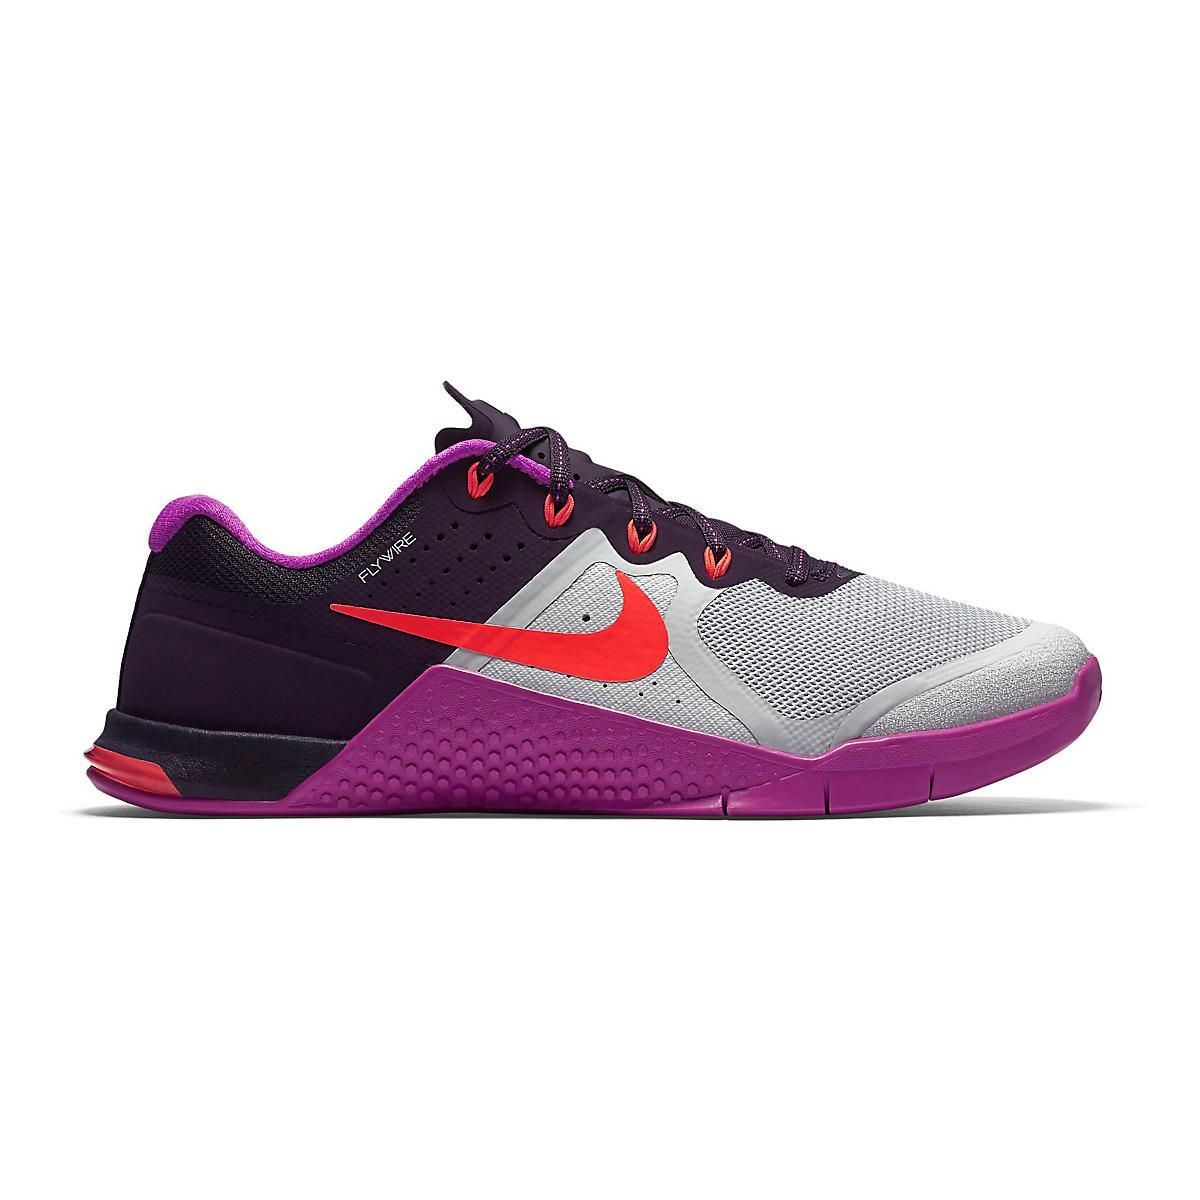 Womens Nike MetCon 2 Cross Training Shoe at Road Runner Sports 0321bf5a1